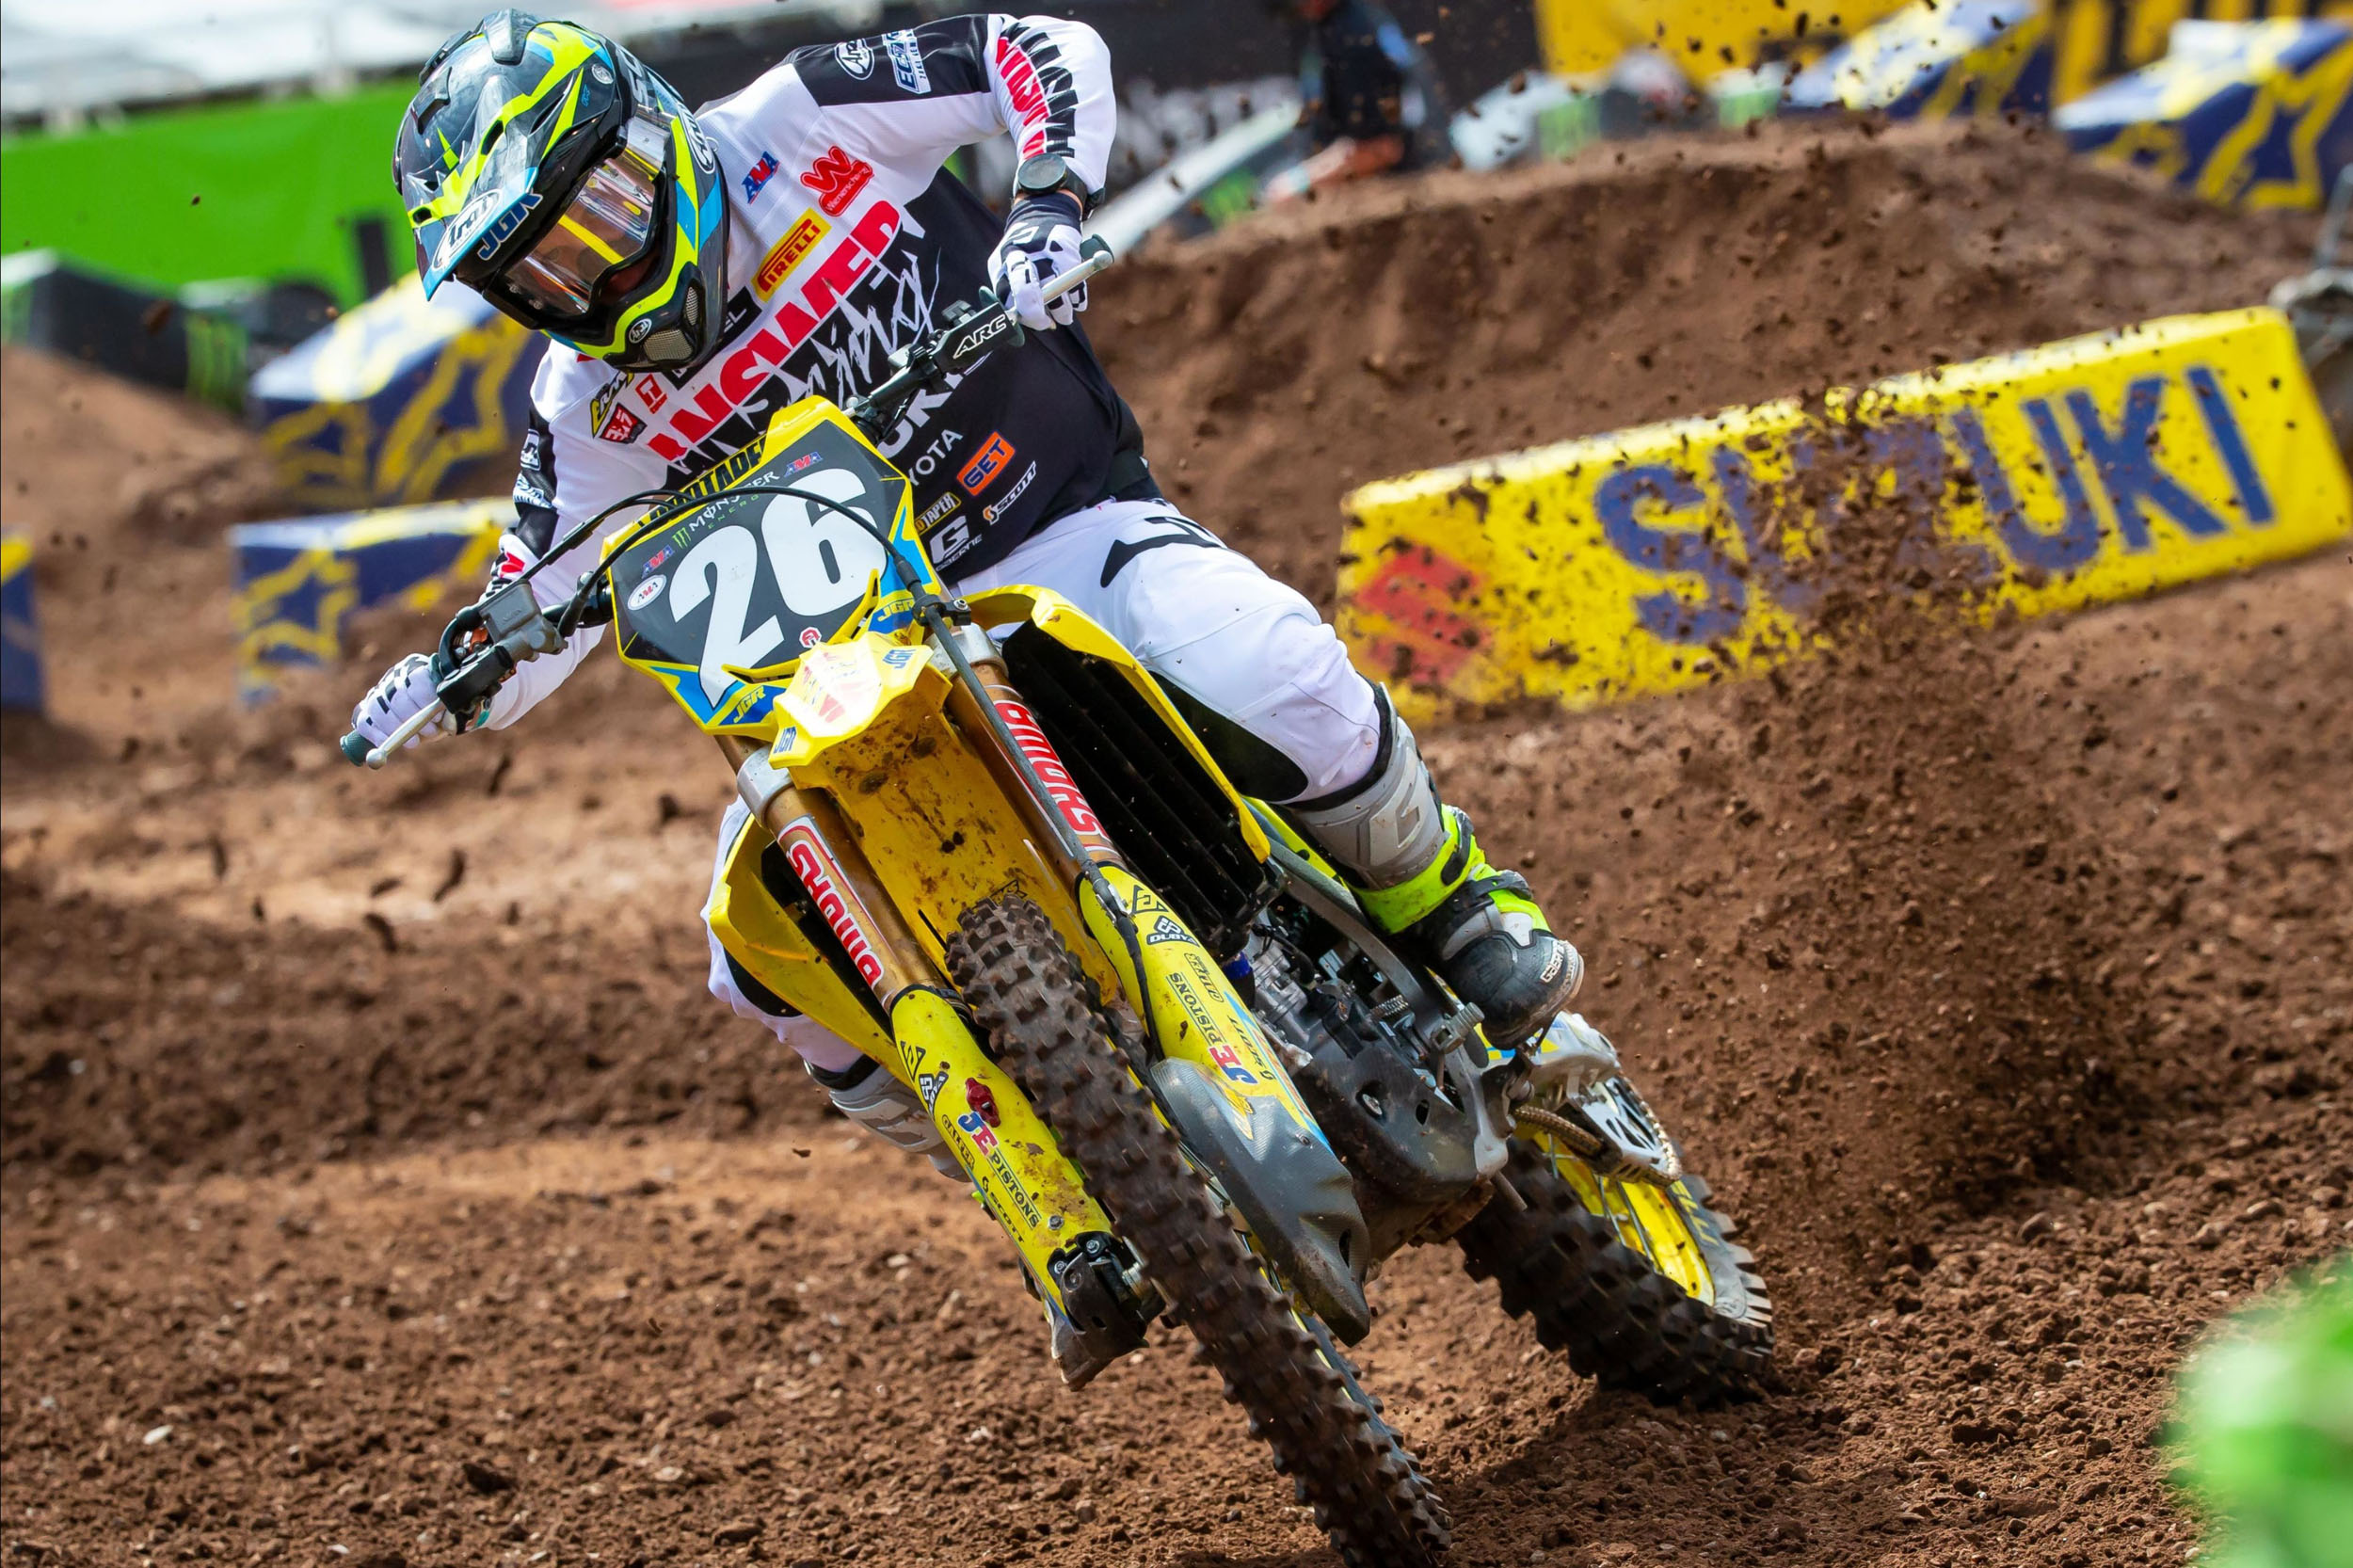 Alex Martin (#26) charged to sixth in the 250 West Championship points standings